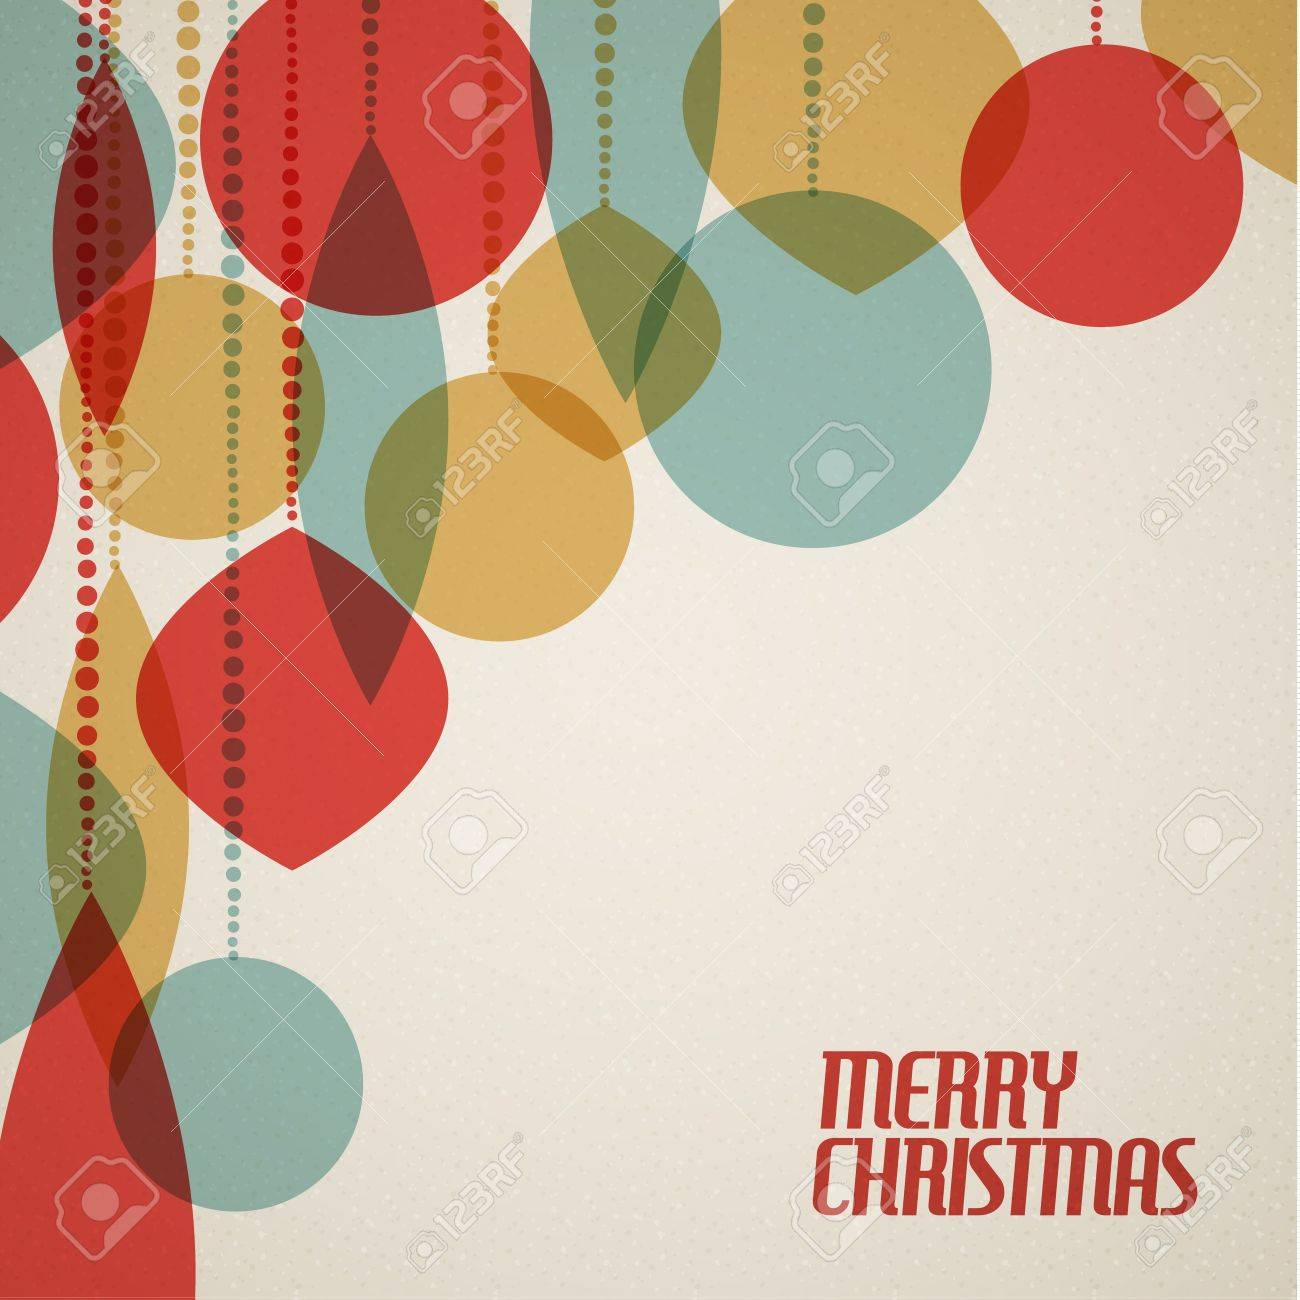 Retro Christmas Card With Christmas Decorations   Teal, Brown And Red Stock  Vector   16135109